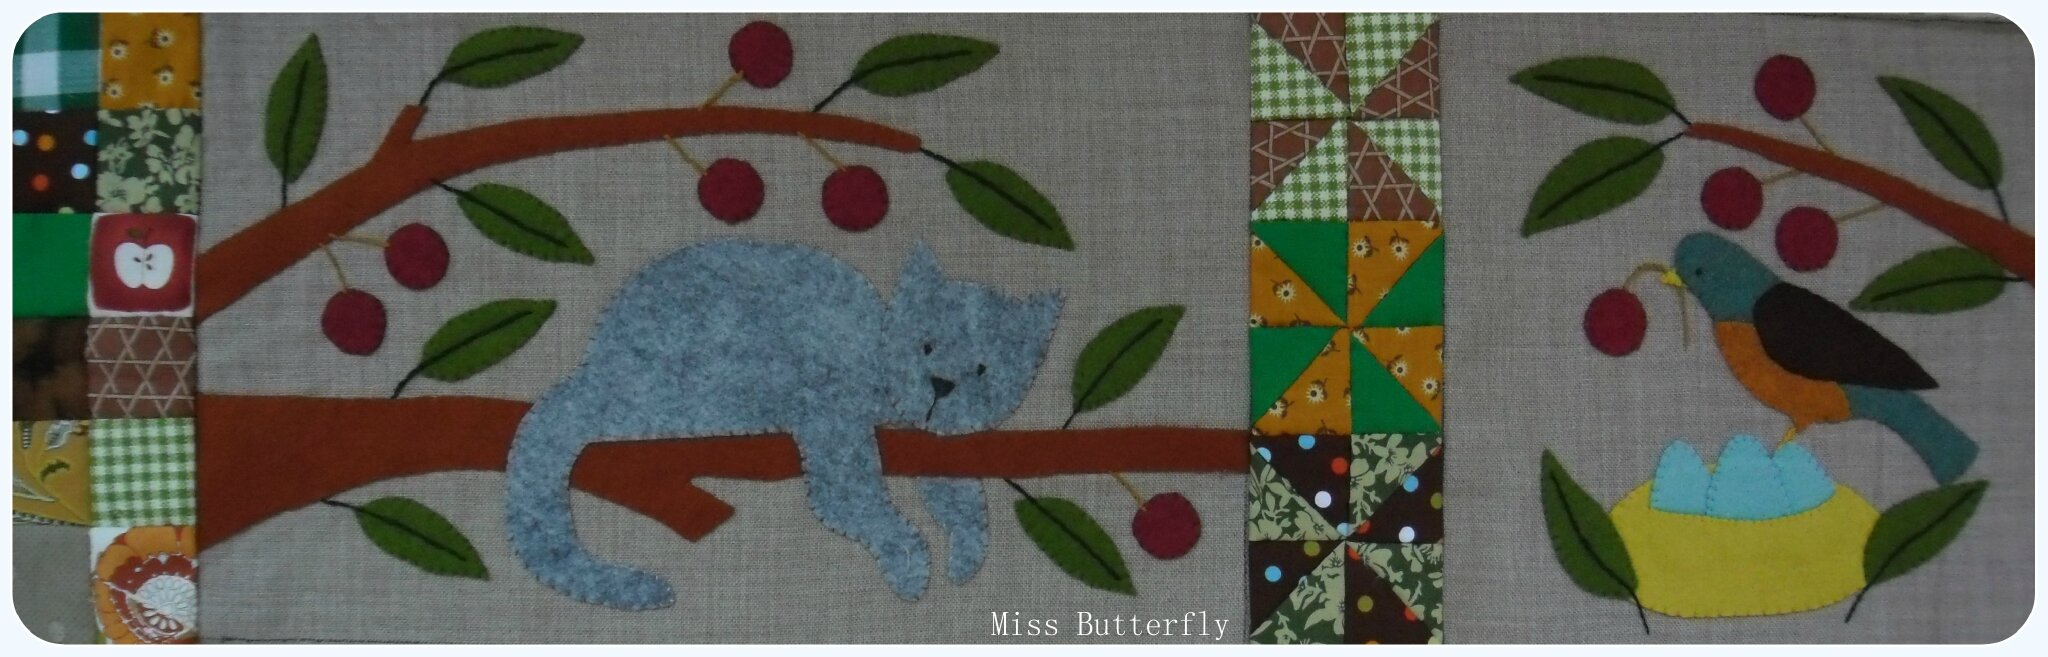 susie's world Block 1 -Miss Butterfly